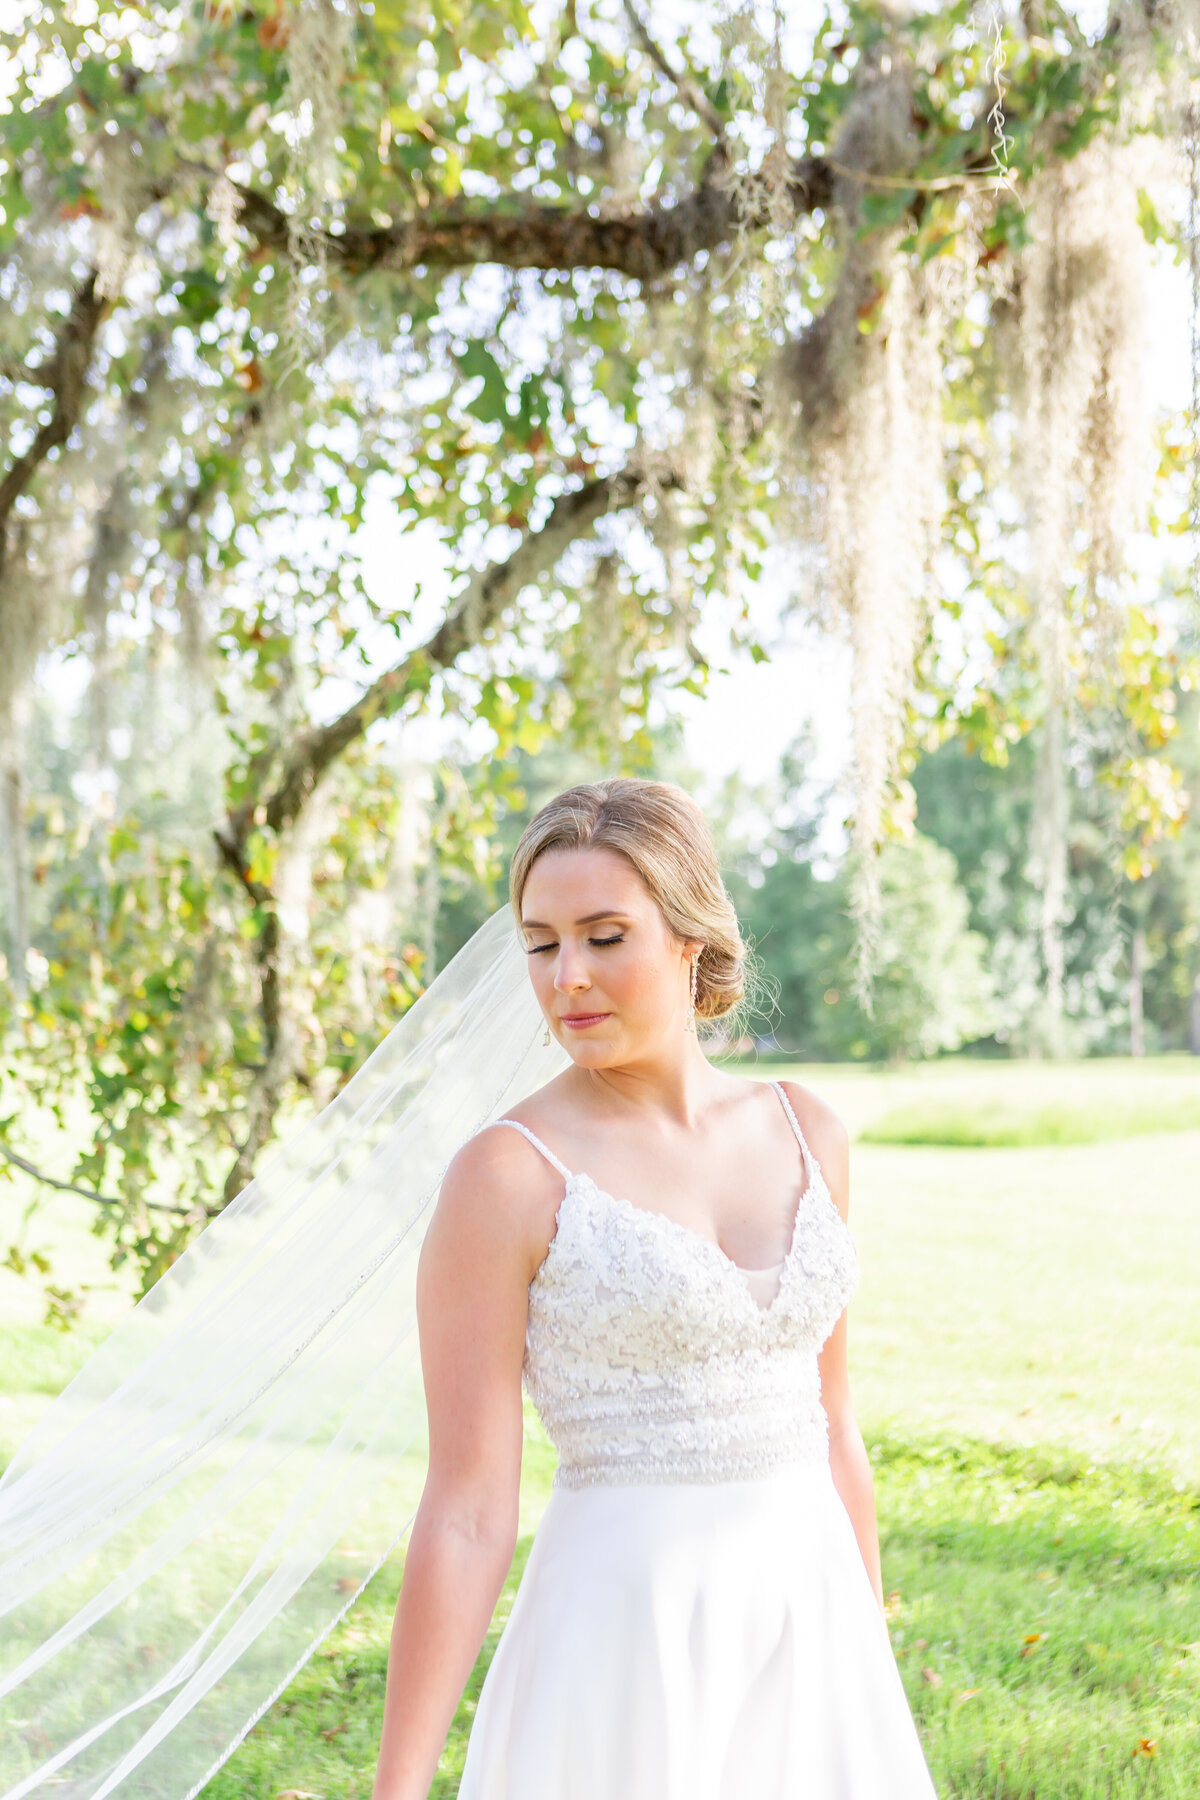 Bridal Portrait in Lush Outdoor Greemery